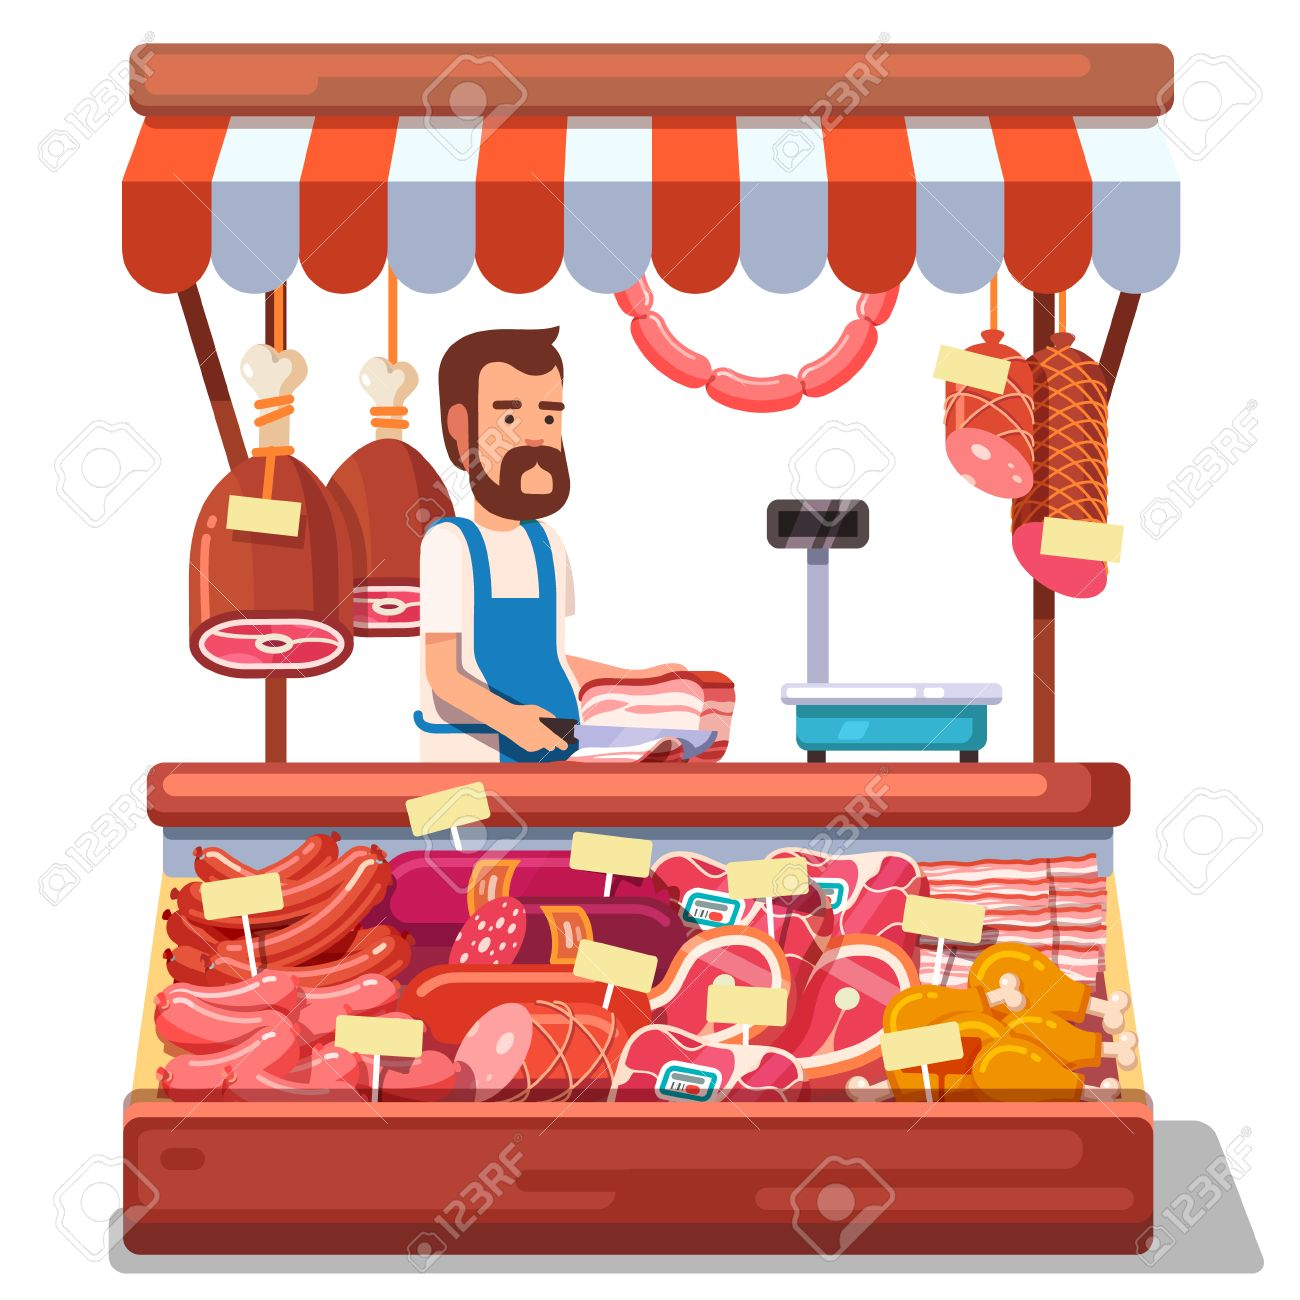 Local market farmer selling fresh meat produce on his stall with awning. Modern flat style realistic vector illustration isolated on white background. - 55251116